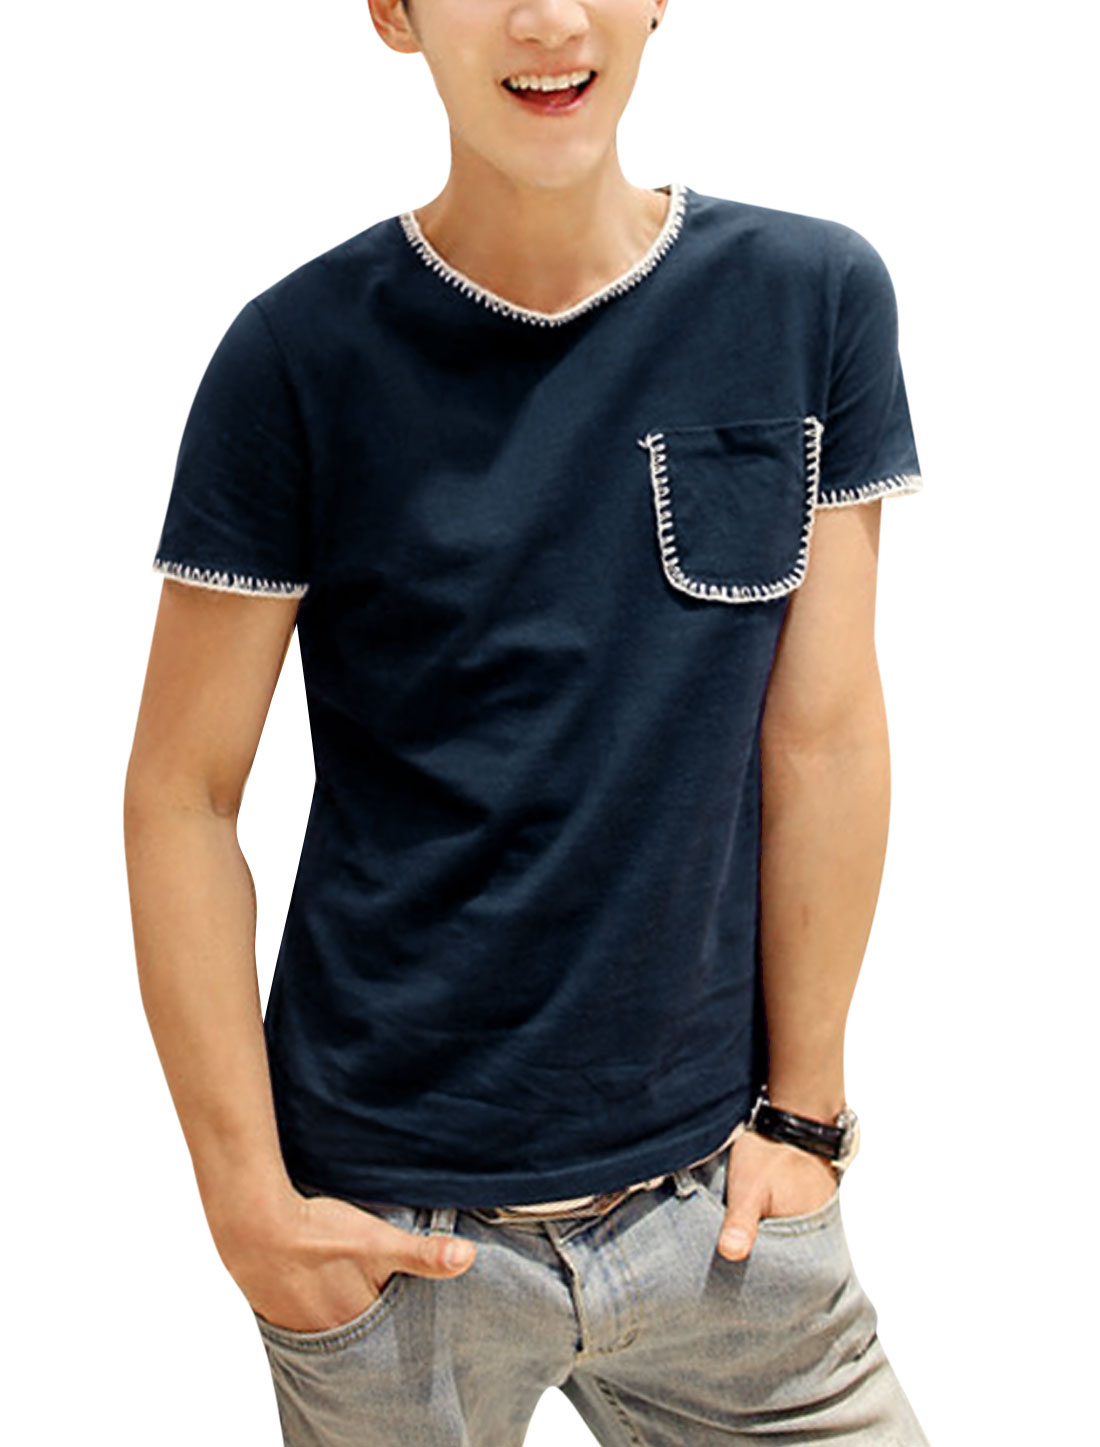 Men Chic NEW Short Sleeve Stitched Detail Pullover T-Shirt Navy Blue S